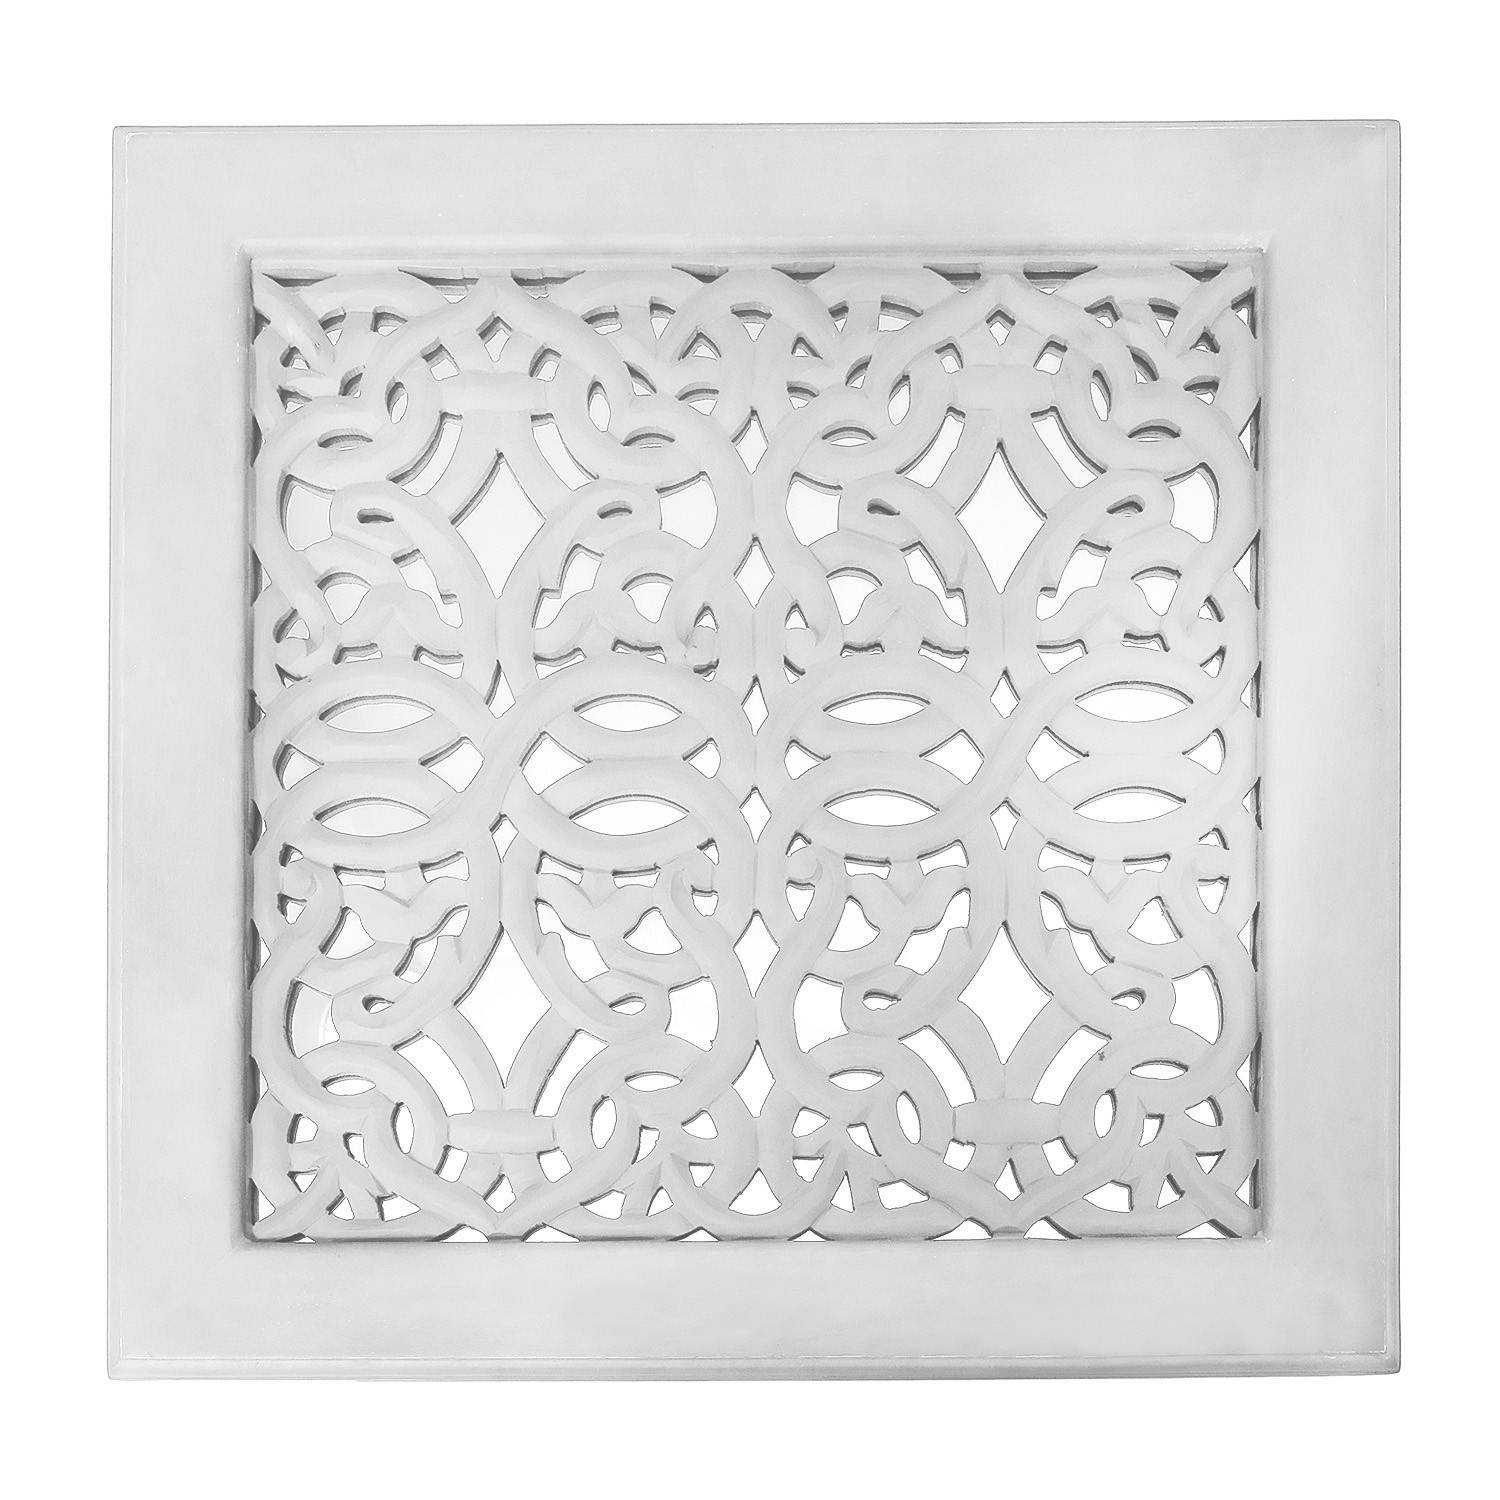 Fretwork Wall Art: White (Set Of 3) | The Yellow Door Store Inside Most Recently Released Fretwork Wall Art (View 10 of 25)